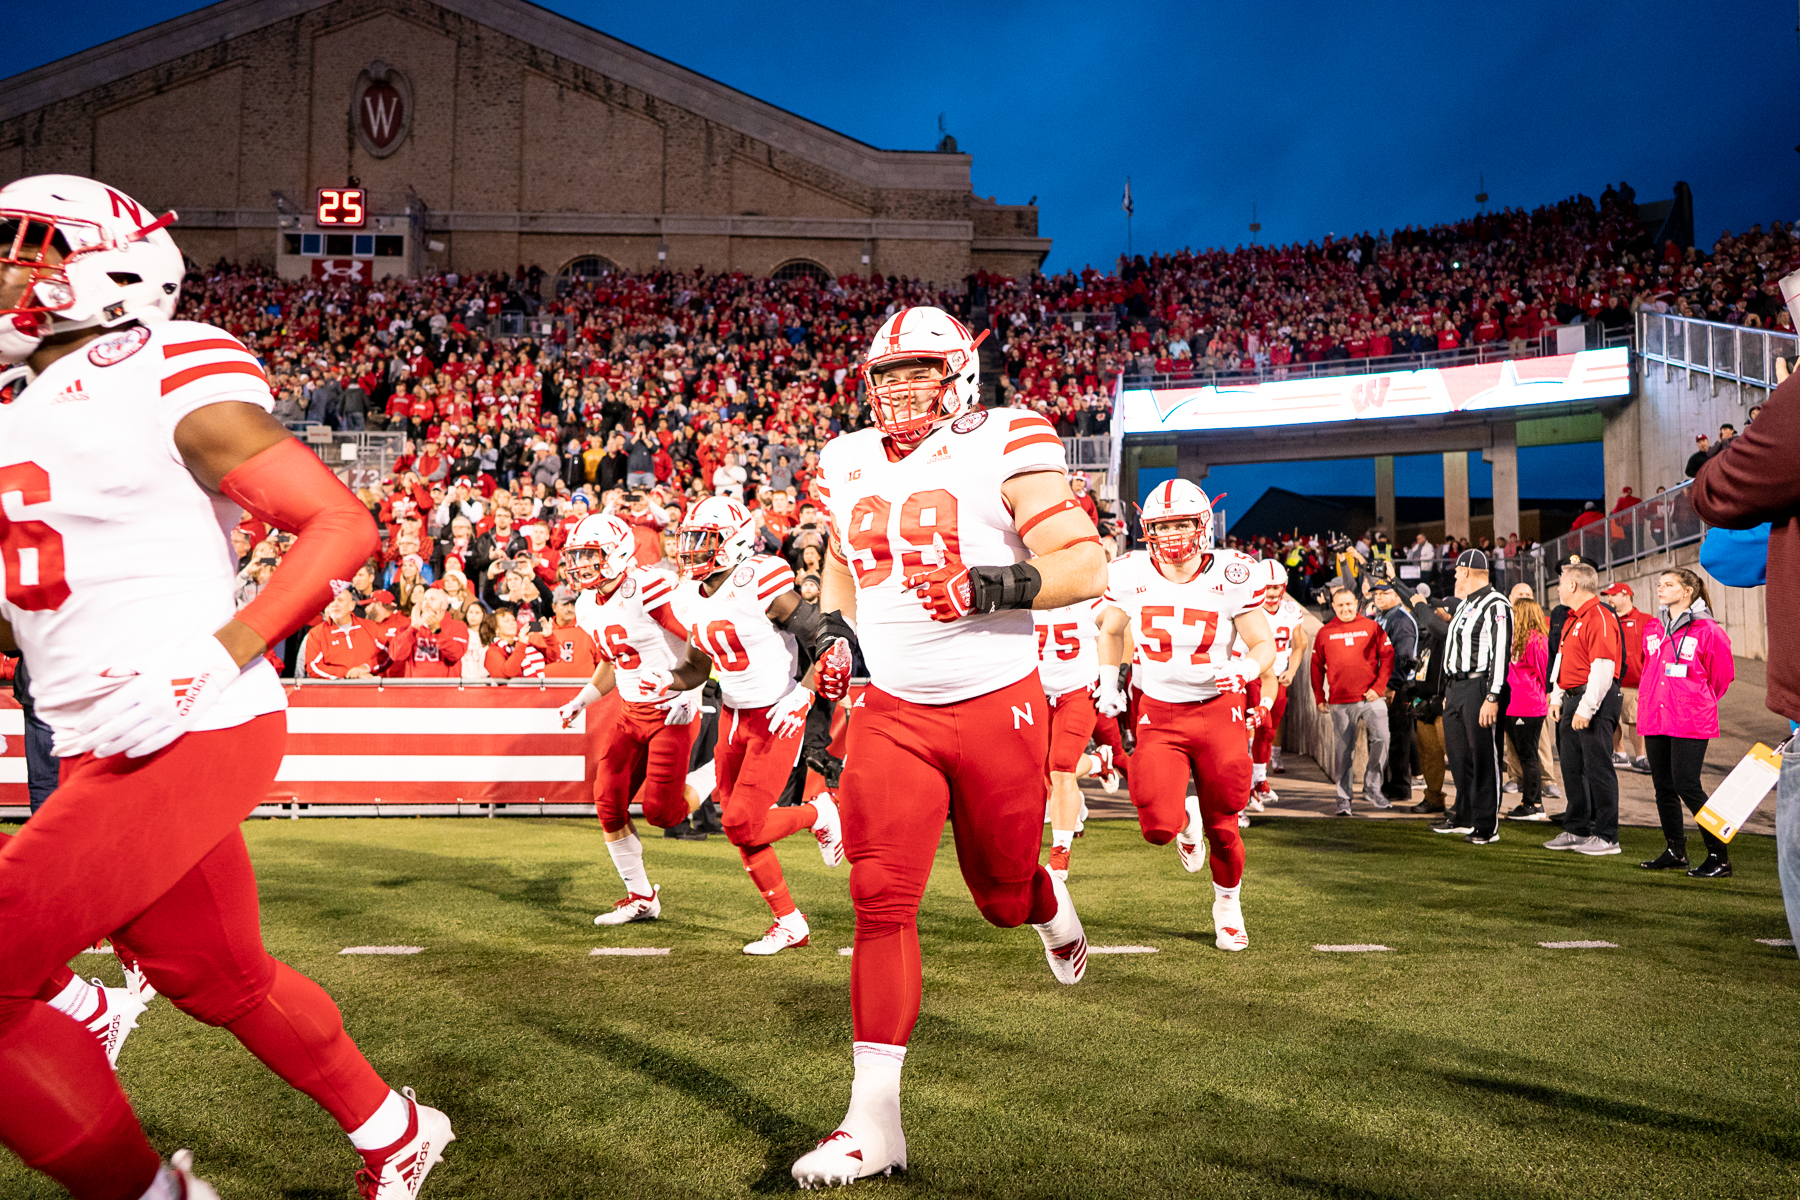 PB180913_FB_Nebr_vs_Wisconsin_3073_paul bellinger boise editorial photographer, huskers 2018 fb.jpg